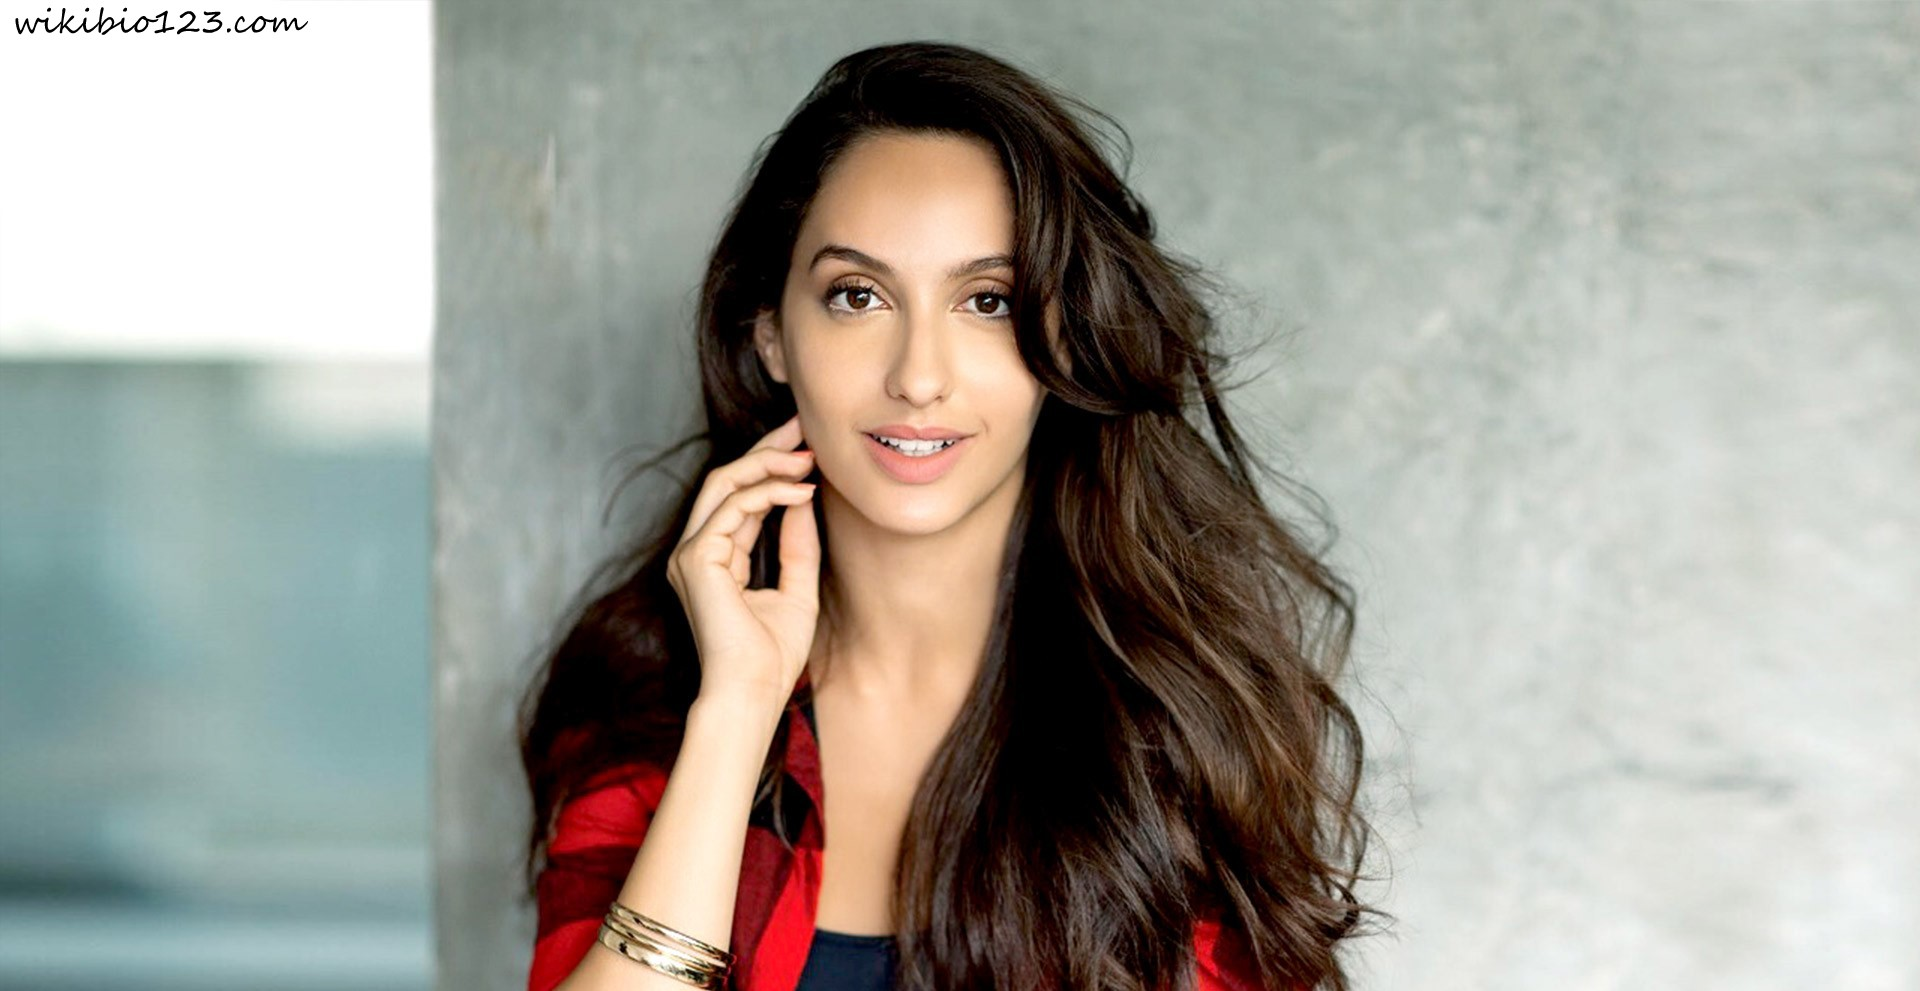 Nora Fatehi wiki Bio Age Figure size Height HD Images Wallpapers Download